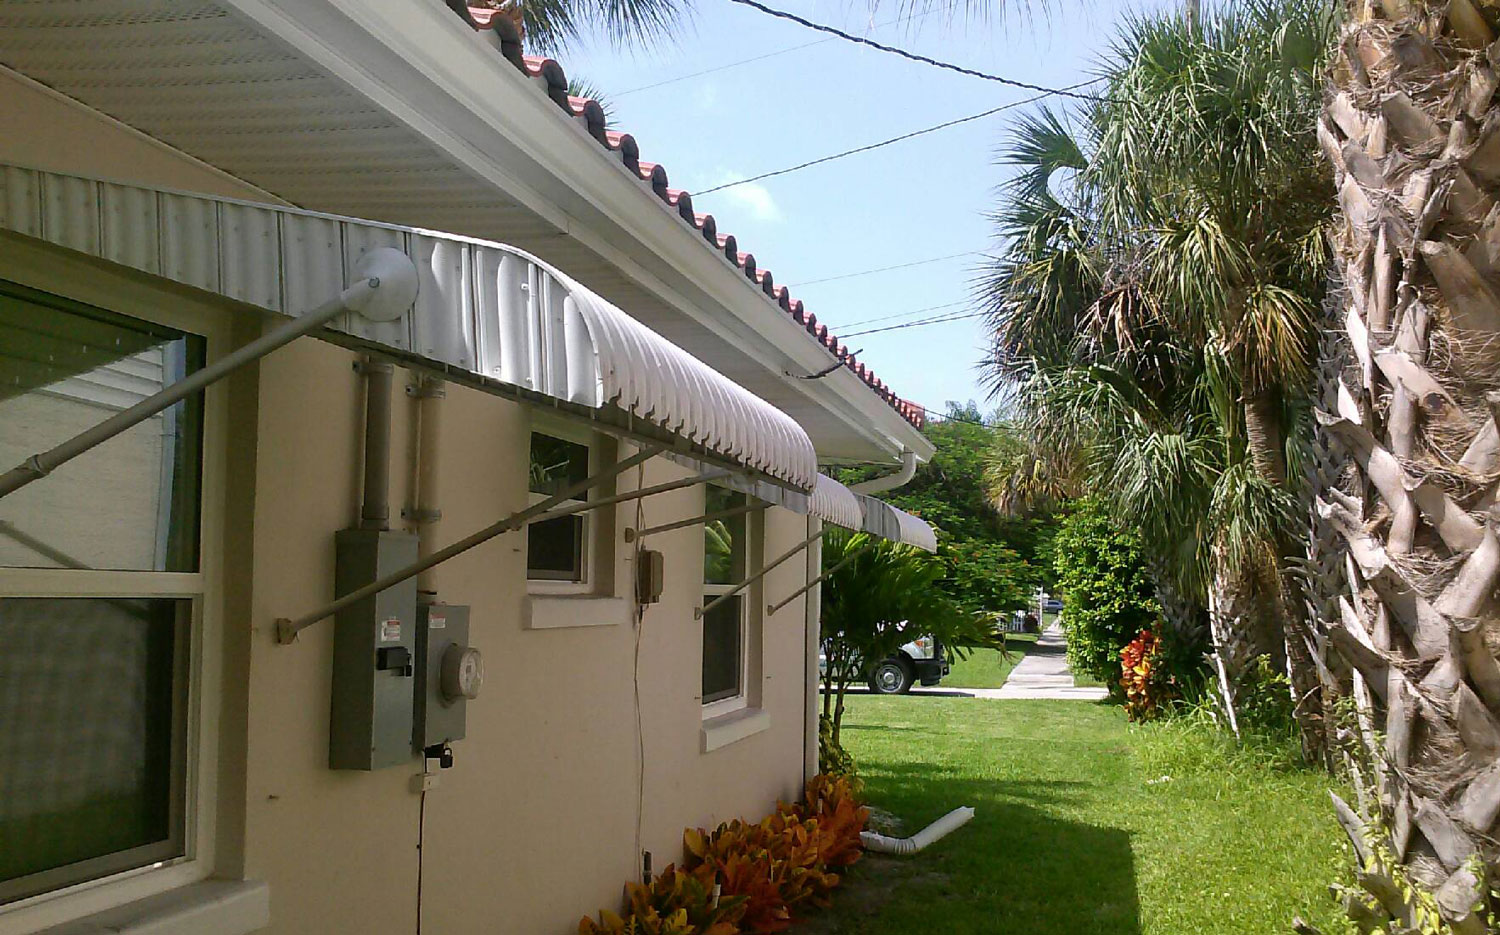 Clamshell Aluminum Awning Gallery